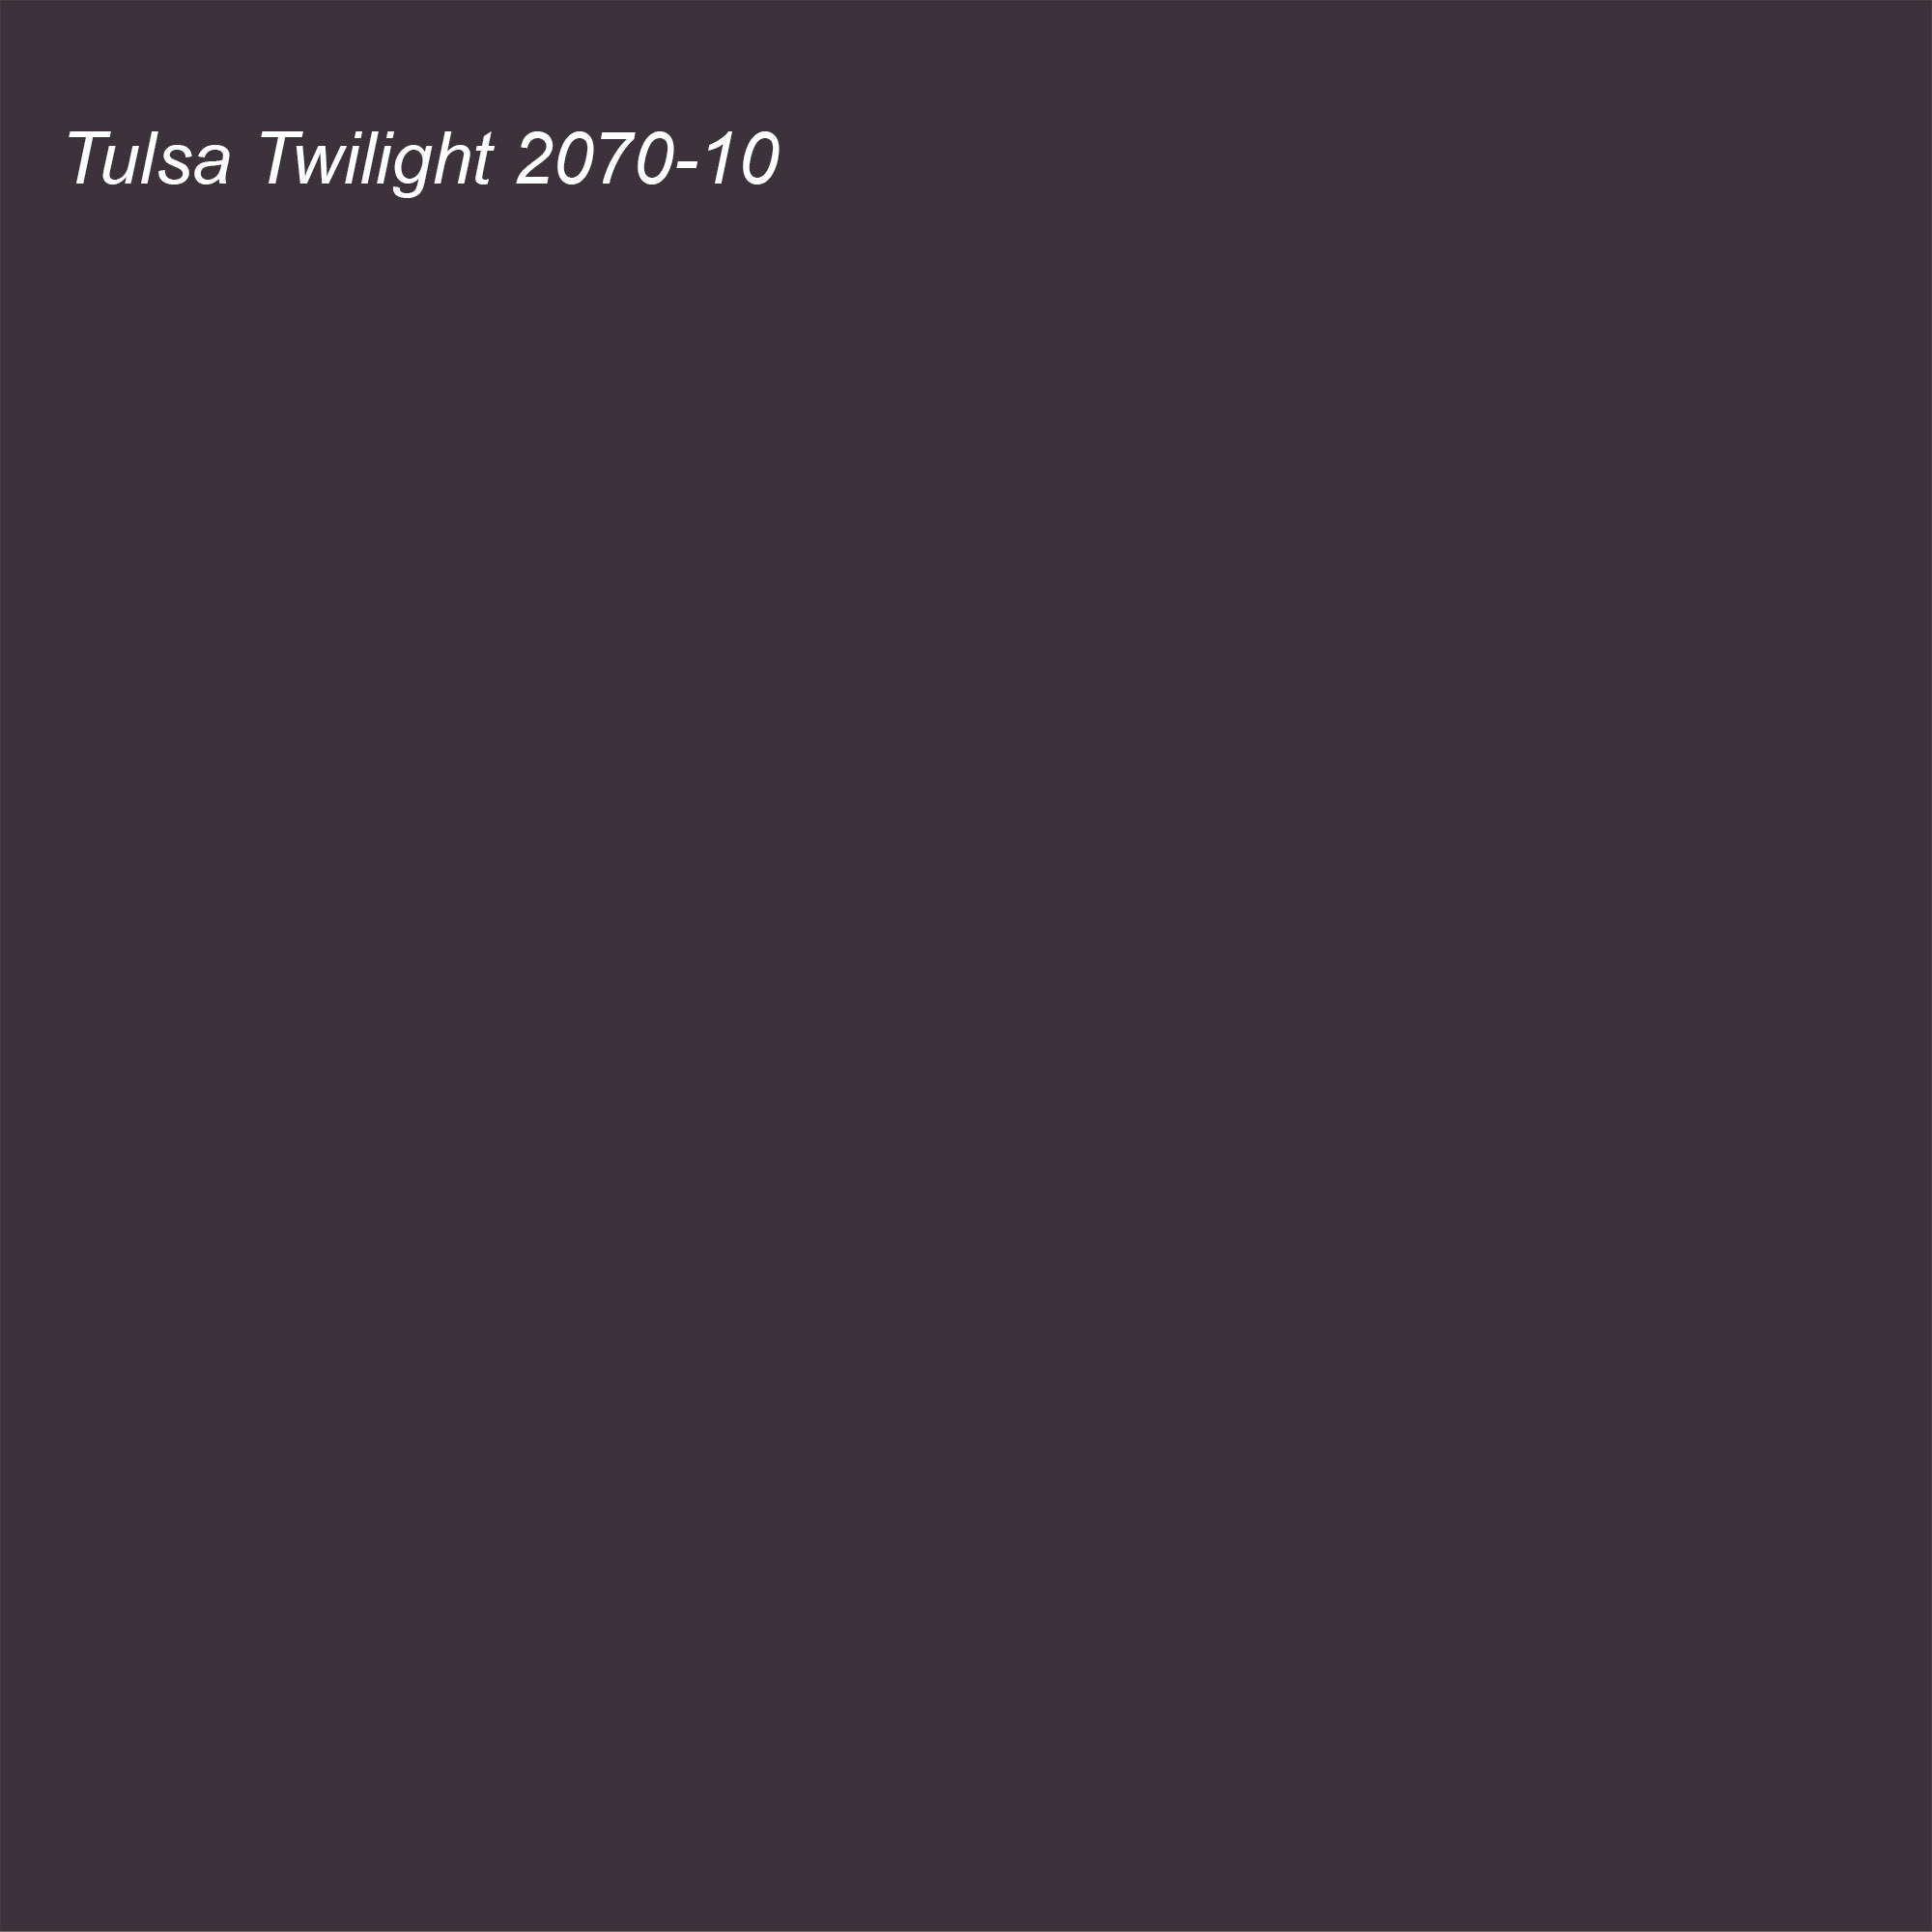 Benjamin Moore 2021 Color of the Year Suggested Accent Shade Tulsa Twilight 2070-10